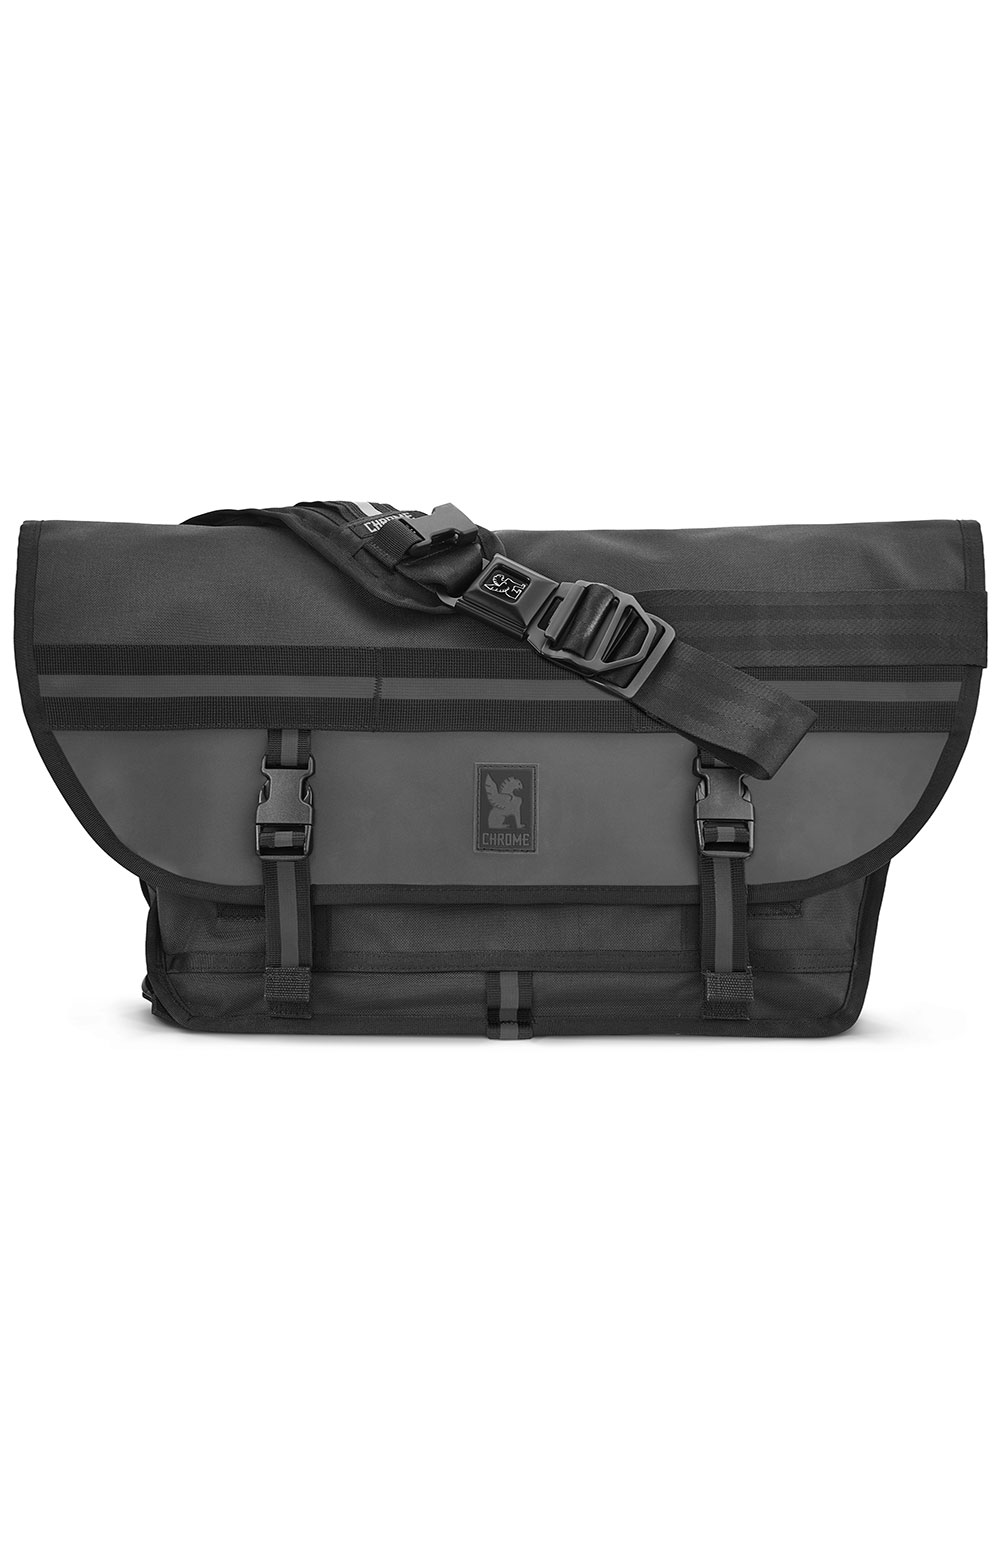 (BG-002-NI) Citizen Messenger Bag - Night  2